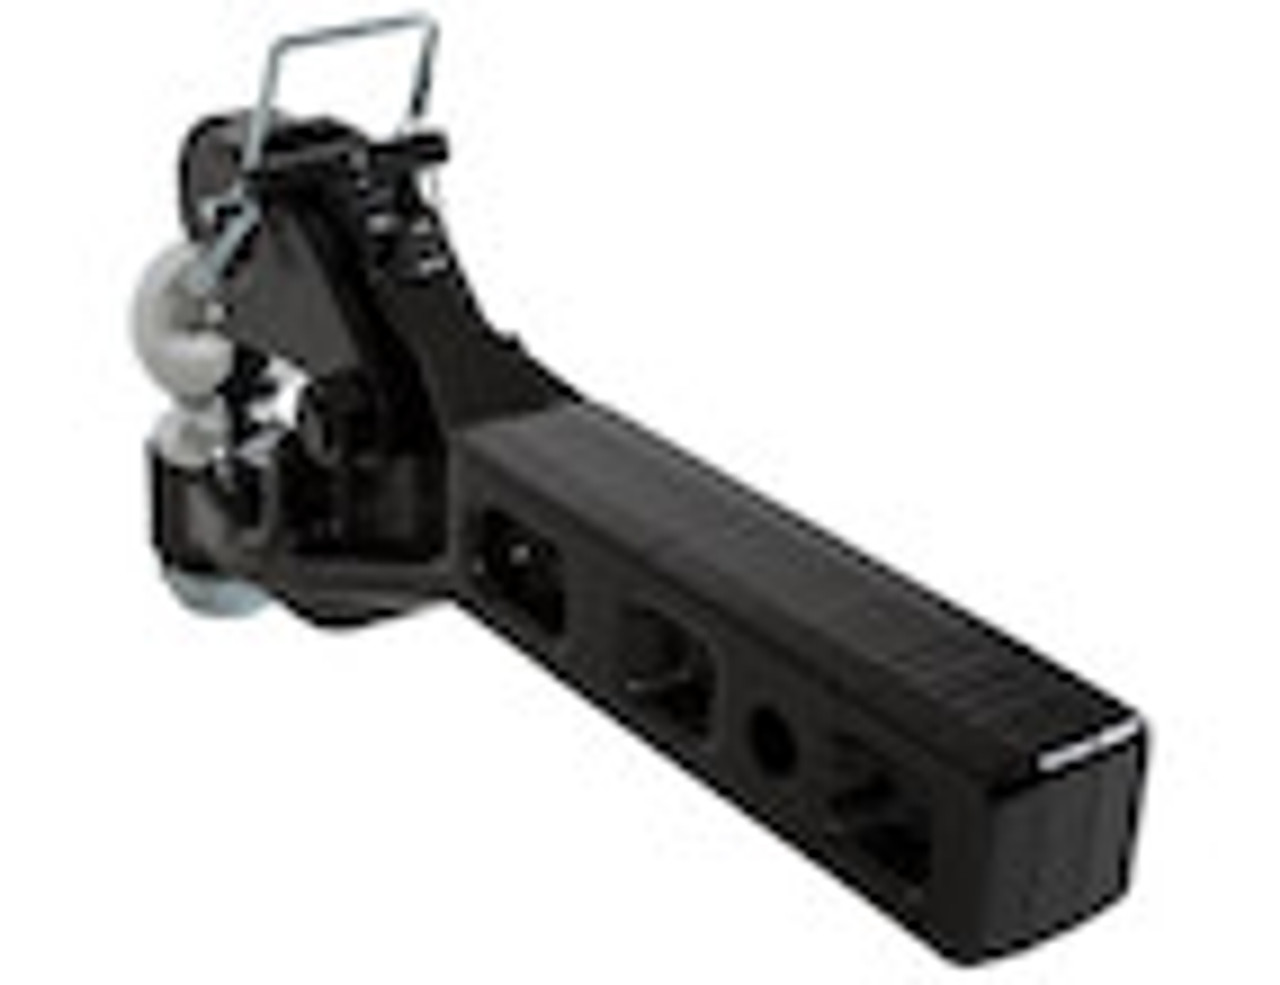 RM62000 BUYERS 6 Ton Combination Hitch - Pintle Hitch With 2 Inch Ball 3